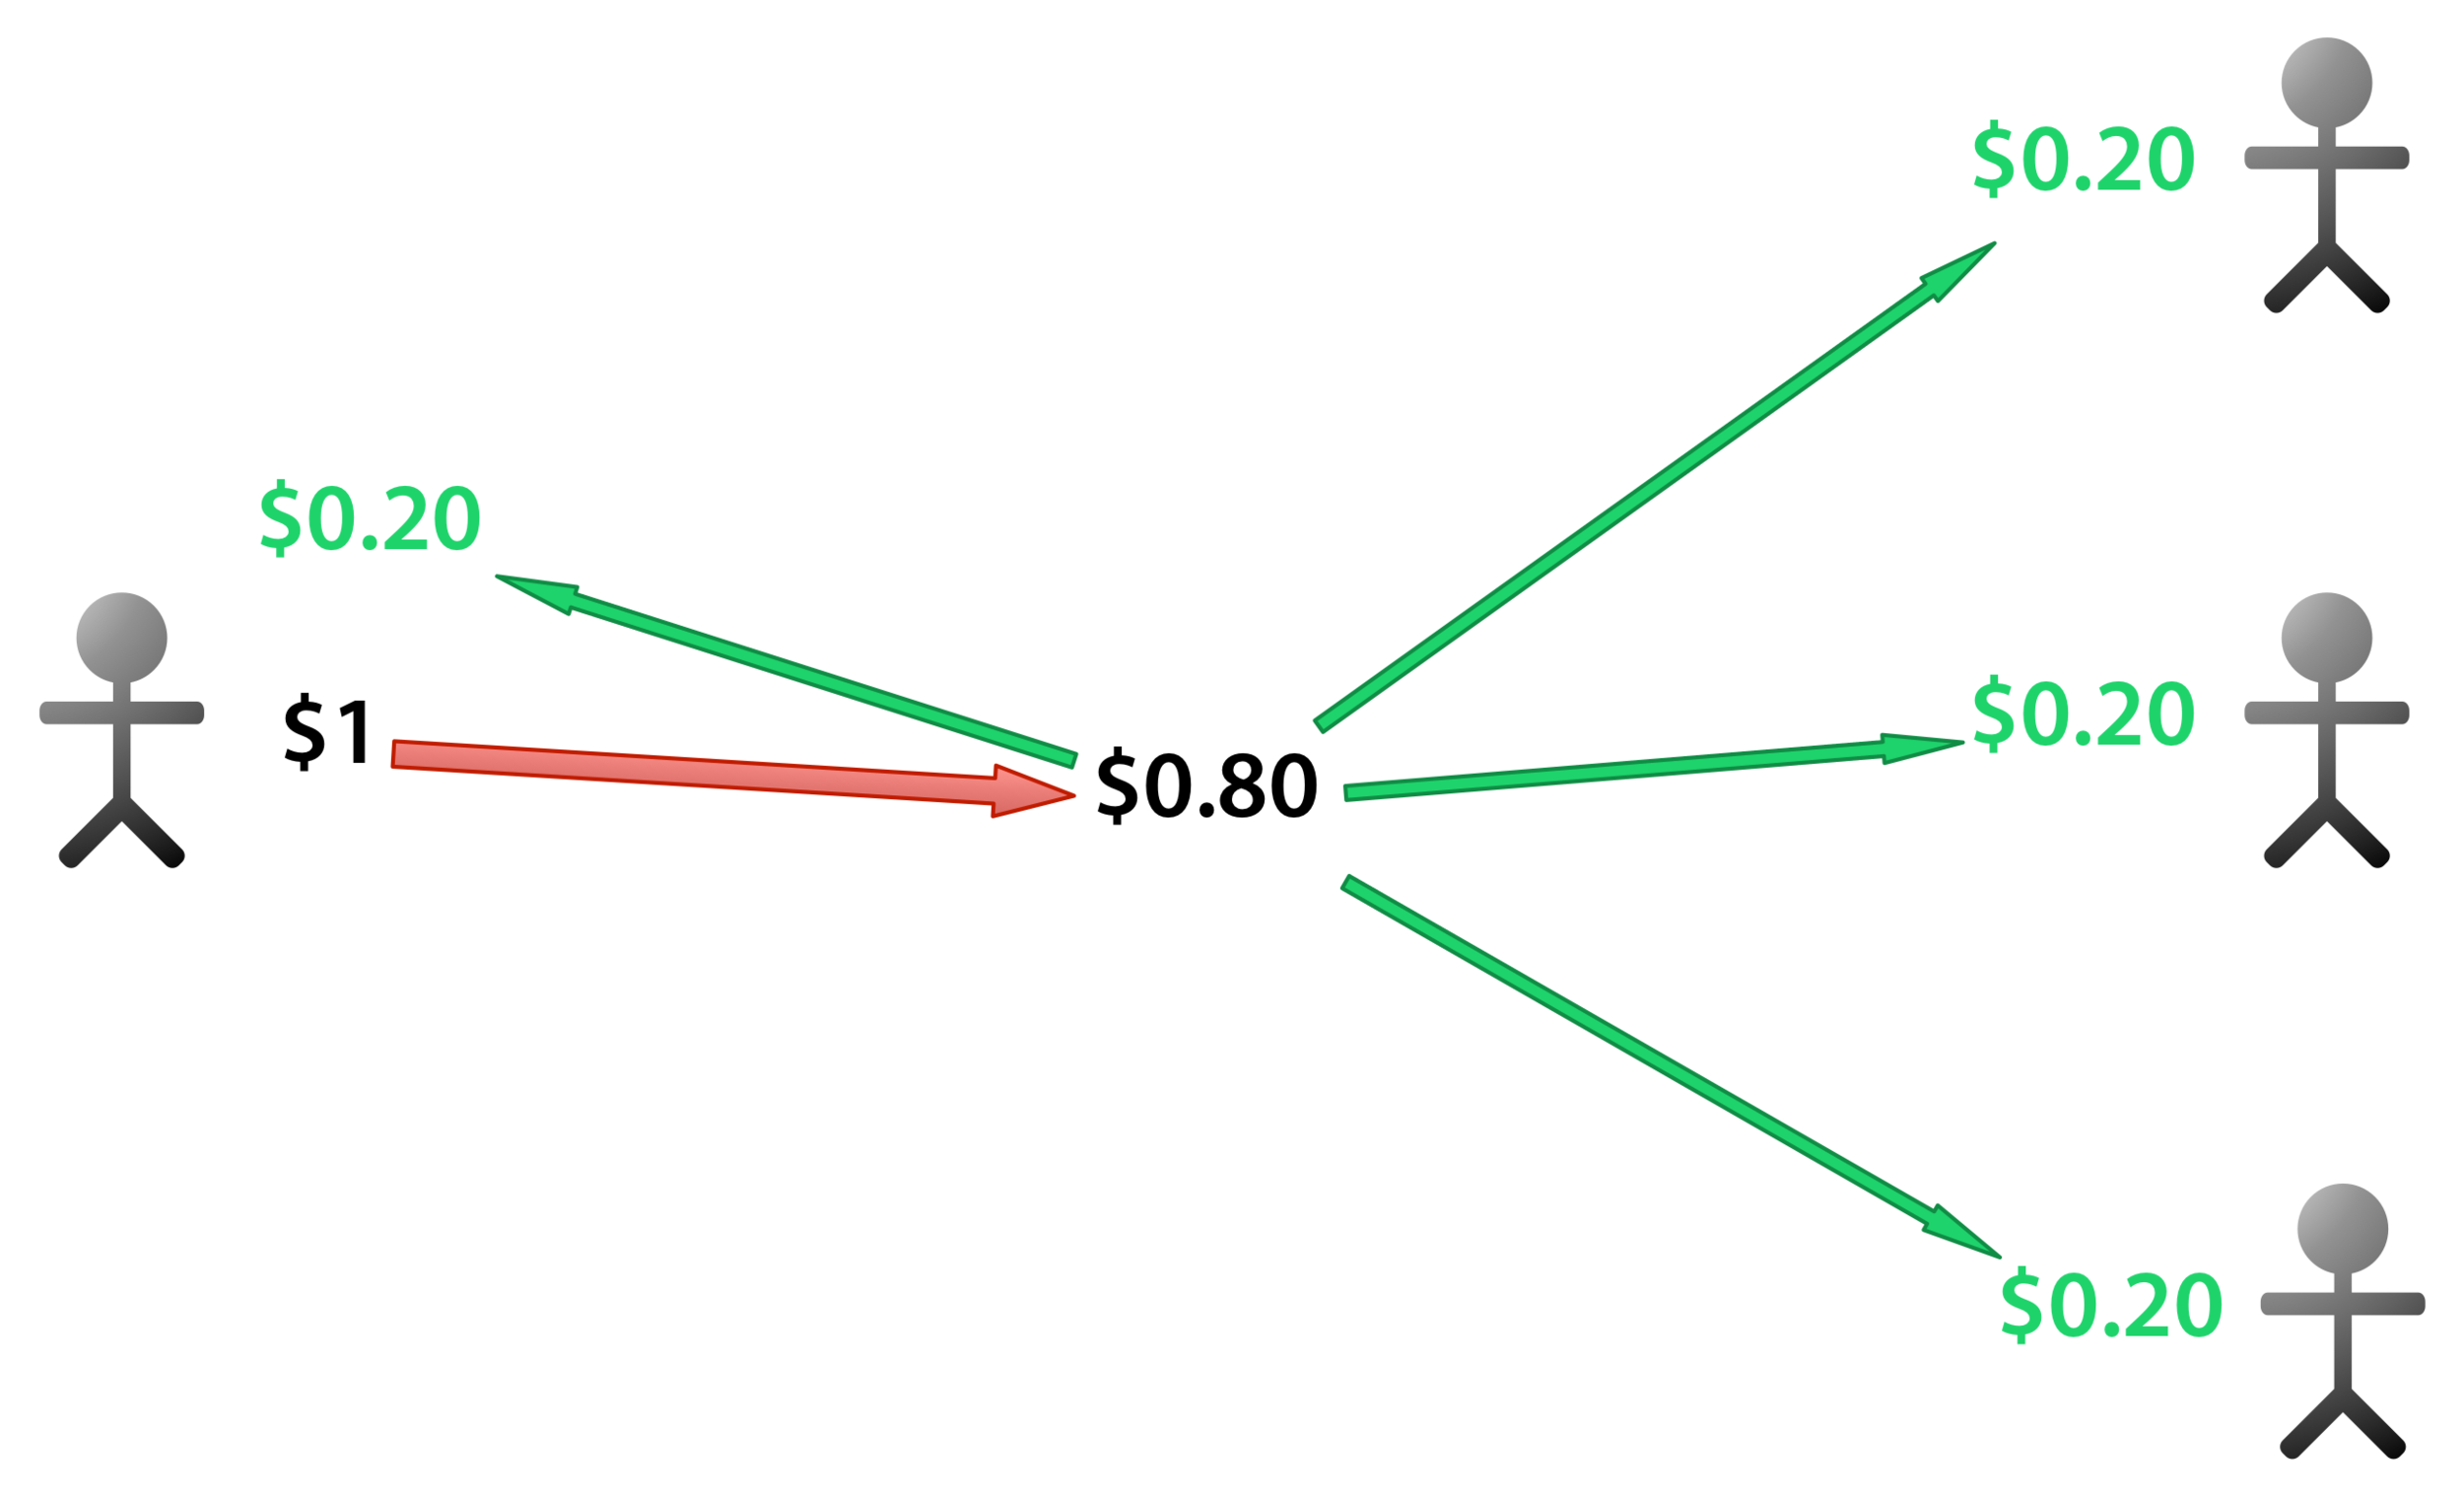 Each contribution of $1 is effectively a gift of 20c to each other group member, and wastes 20c. In our experiment, the maximum endowment that could be spend each round was 80c, rather than a dollar, but the economic logic is the same.